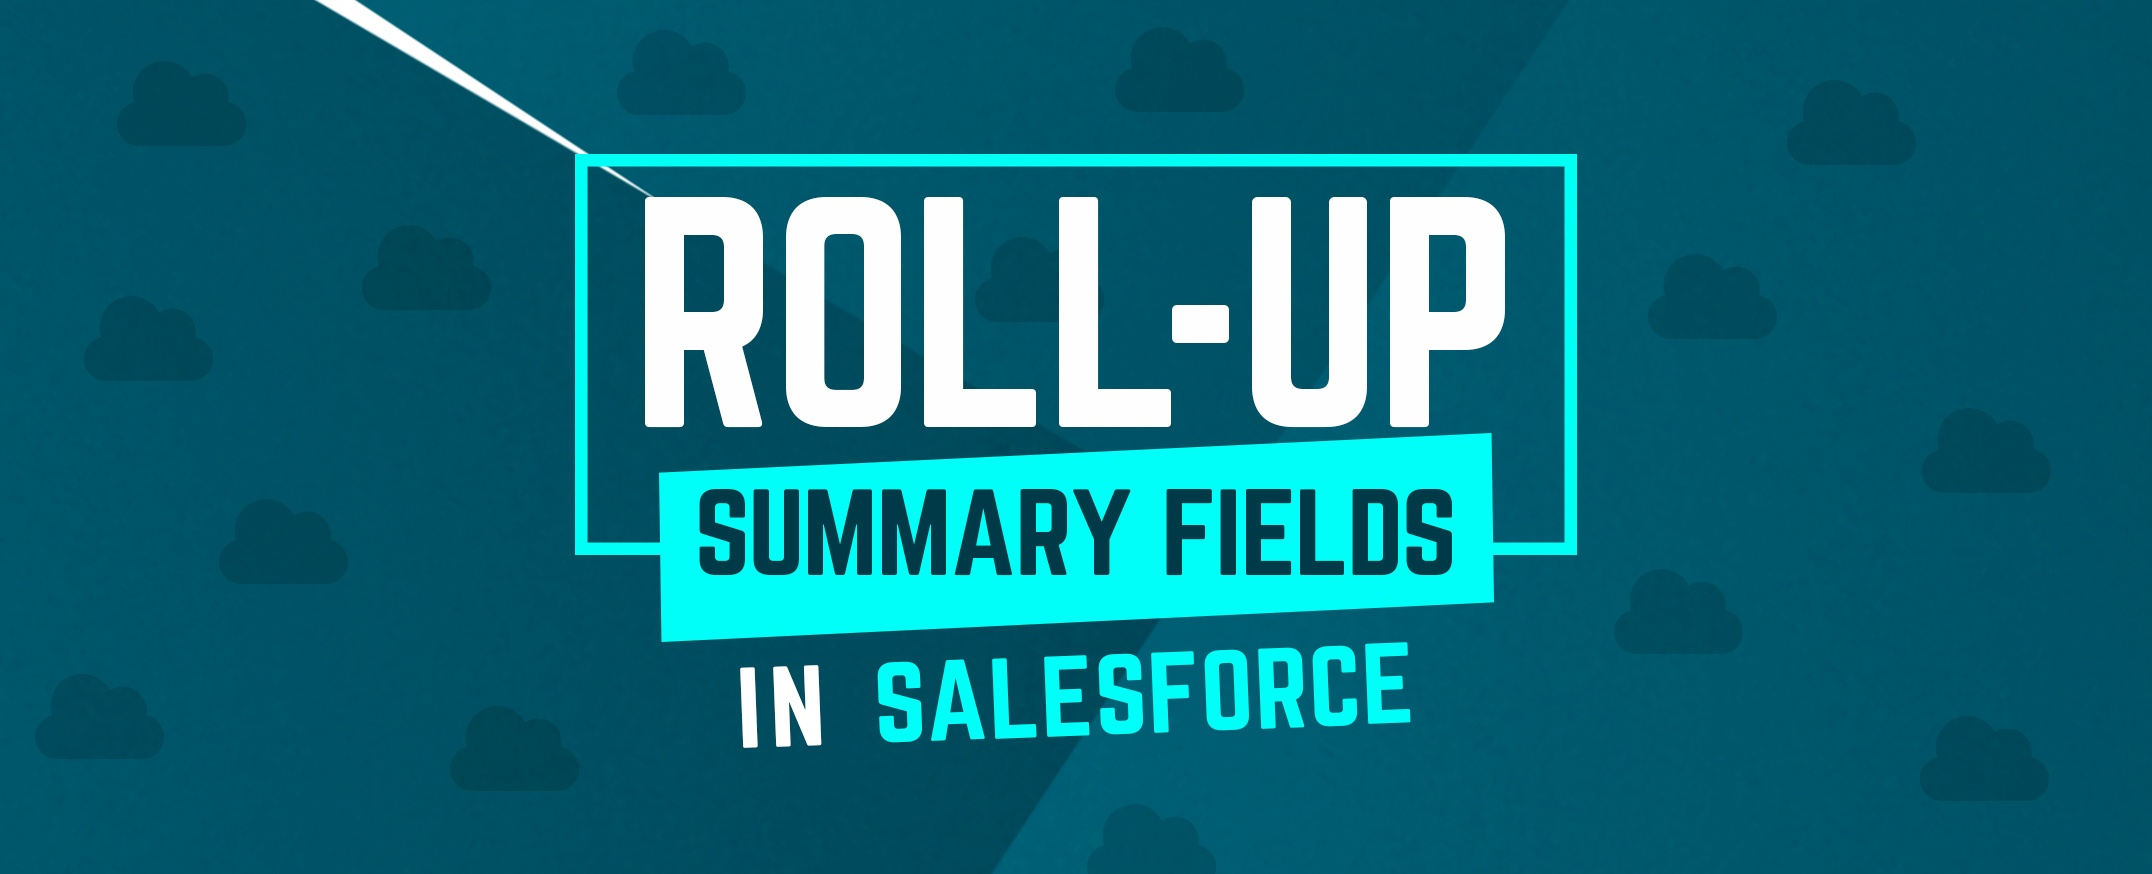 Roll-Up-Summary-Fields-in-Salesforce